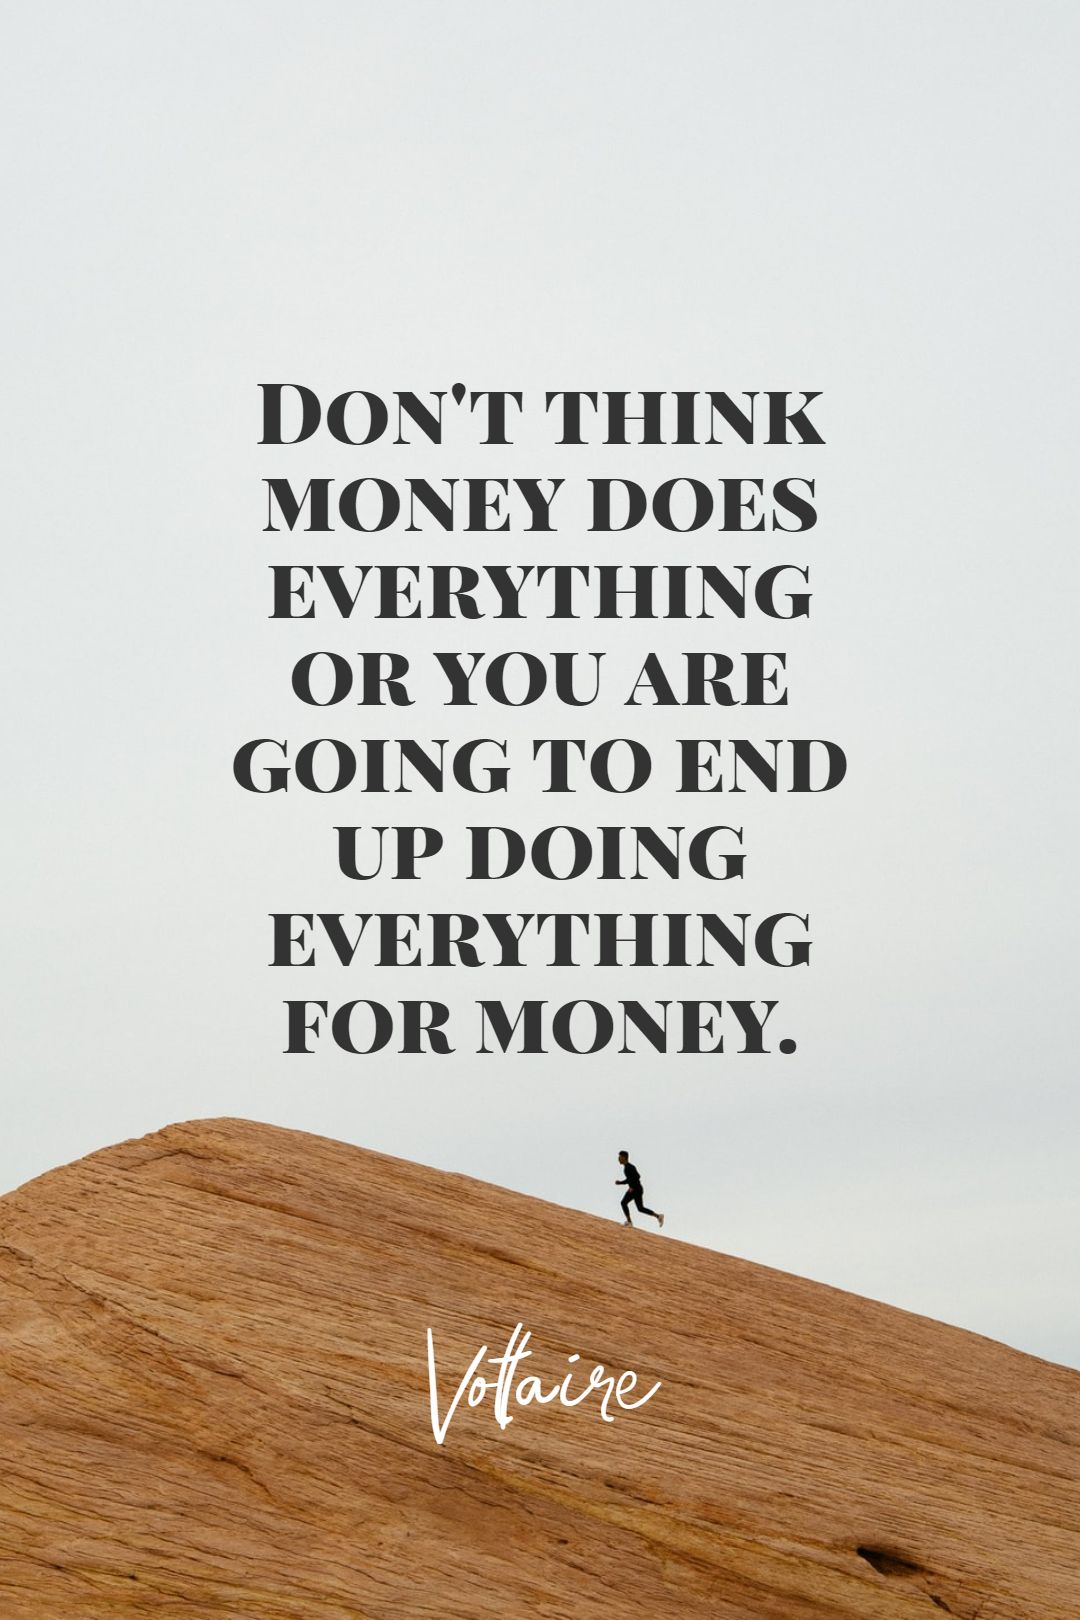 Quotes image of Don't think money does everything or you are going to end up doing everything for money.